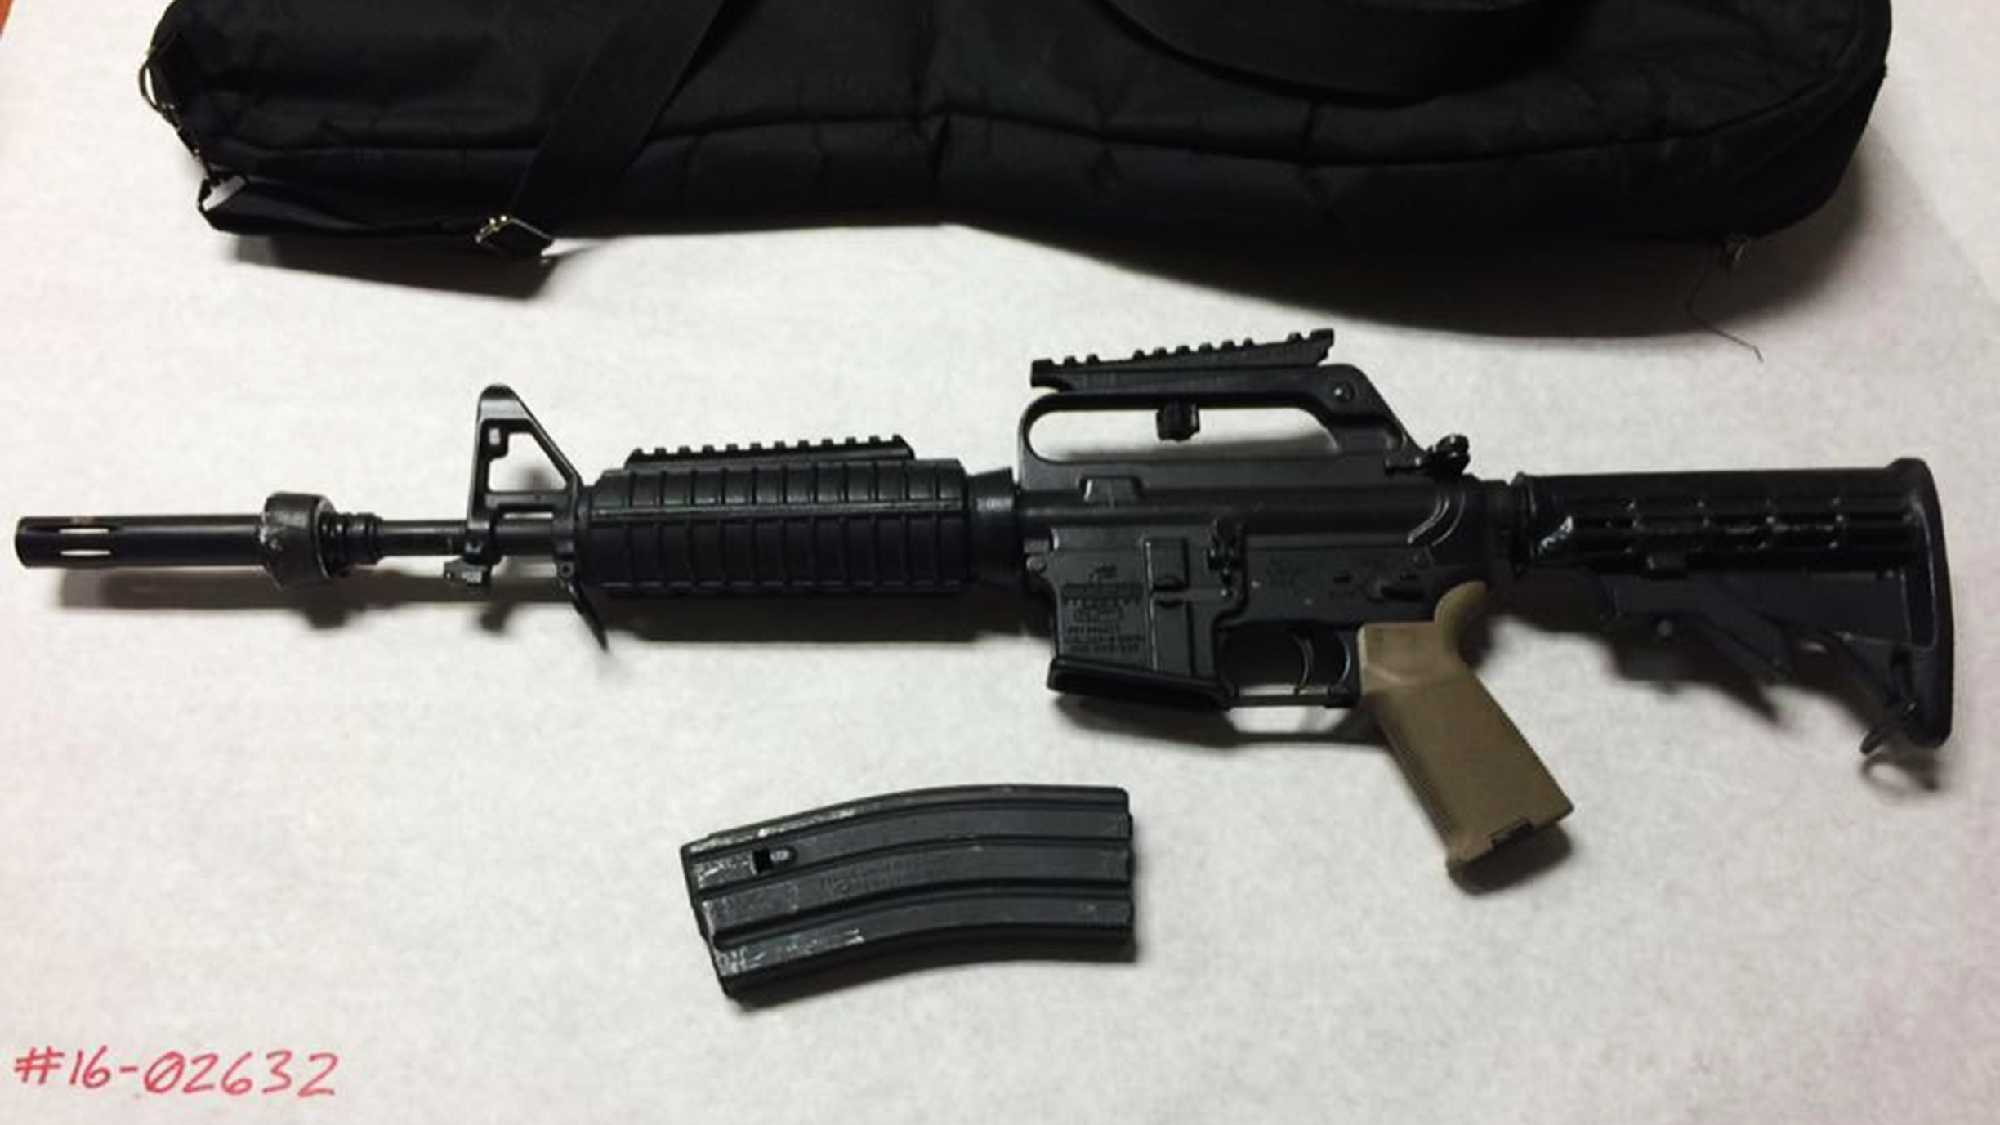 This AR15 was seized in Aptos on April 2, 2016.